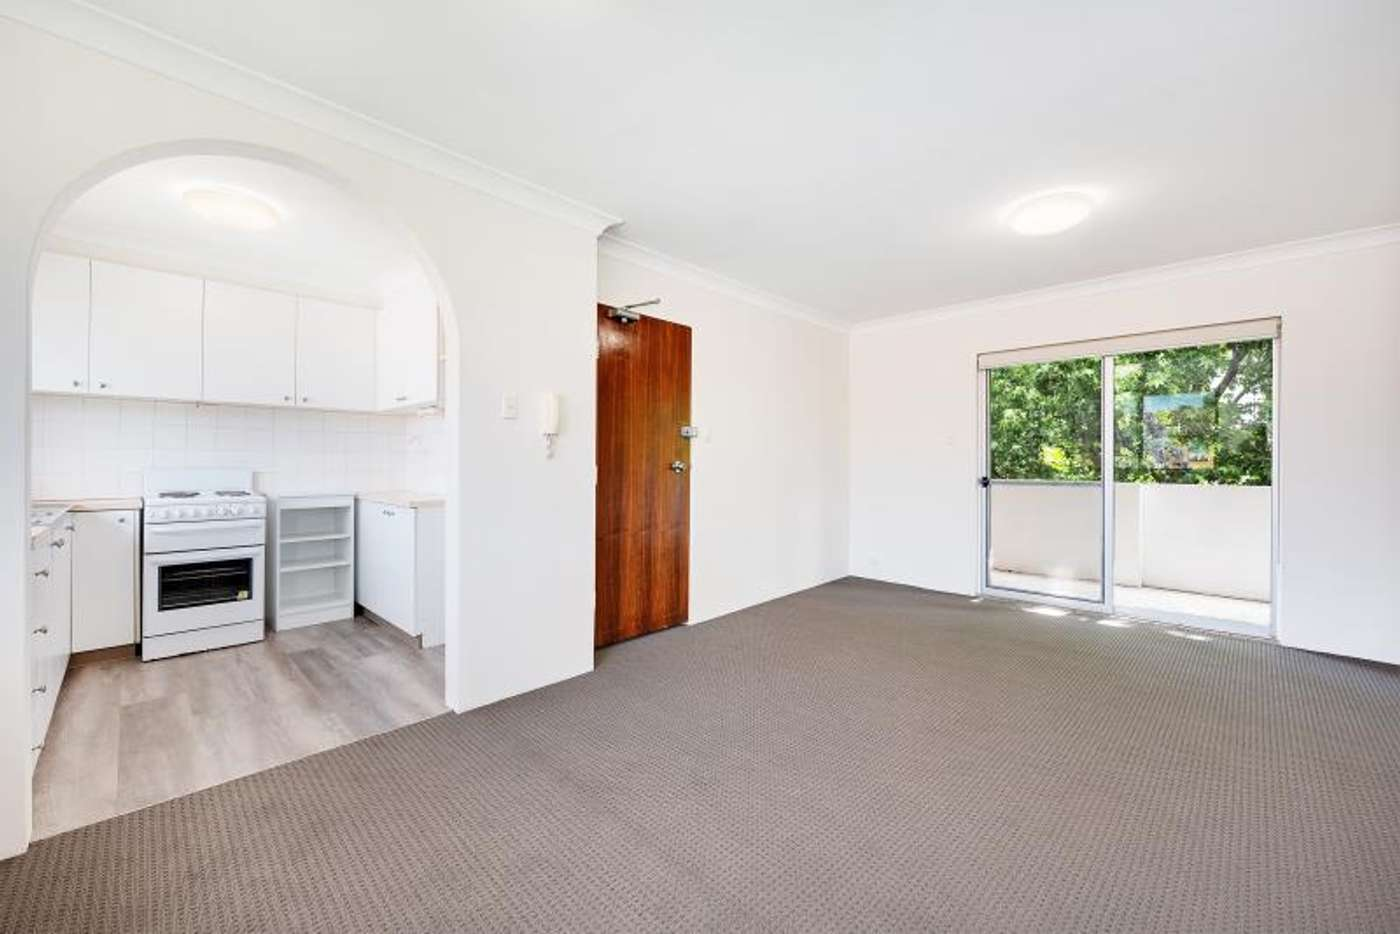 Main view of Homely apartment listing, 13/163 Todman Avenue, Kensington NSW 2033